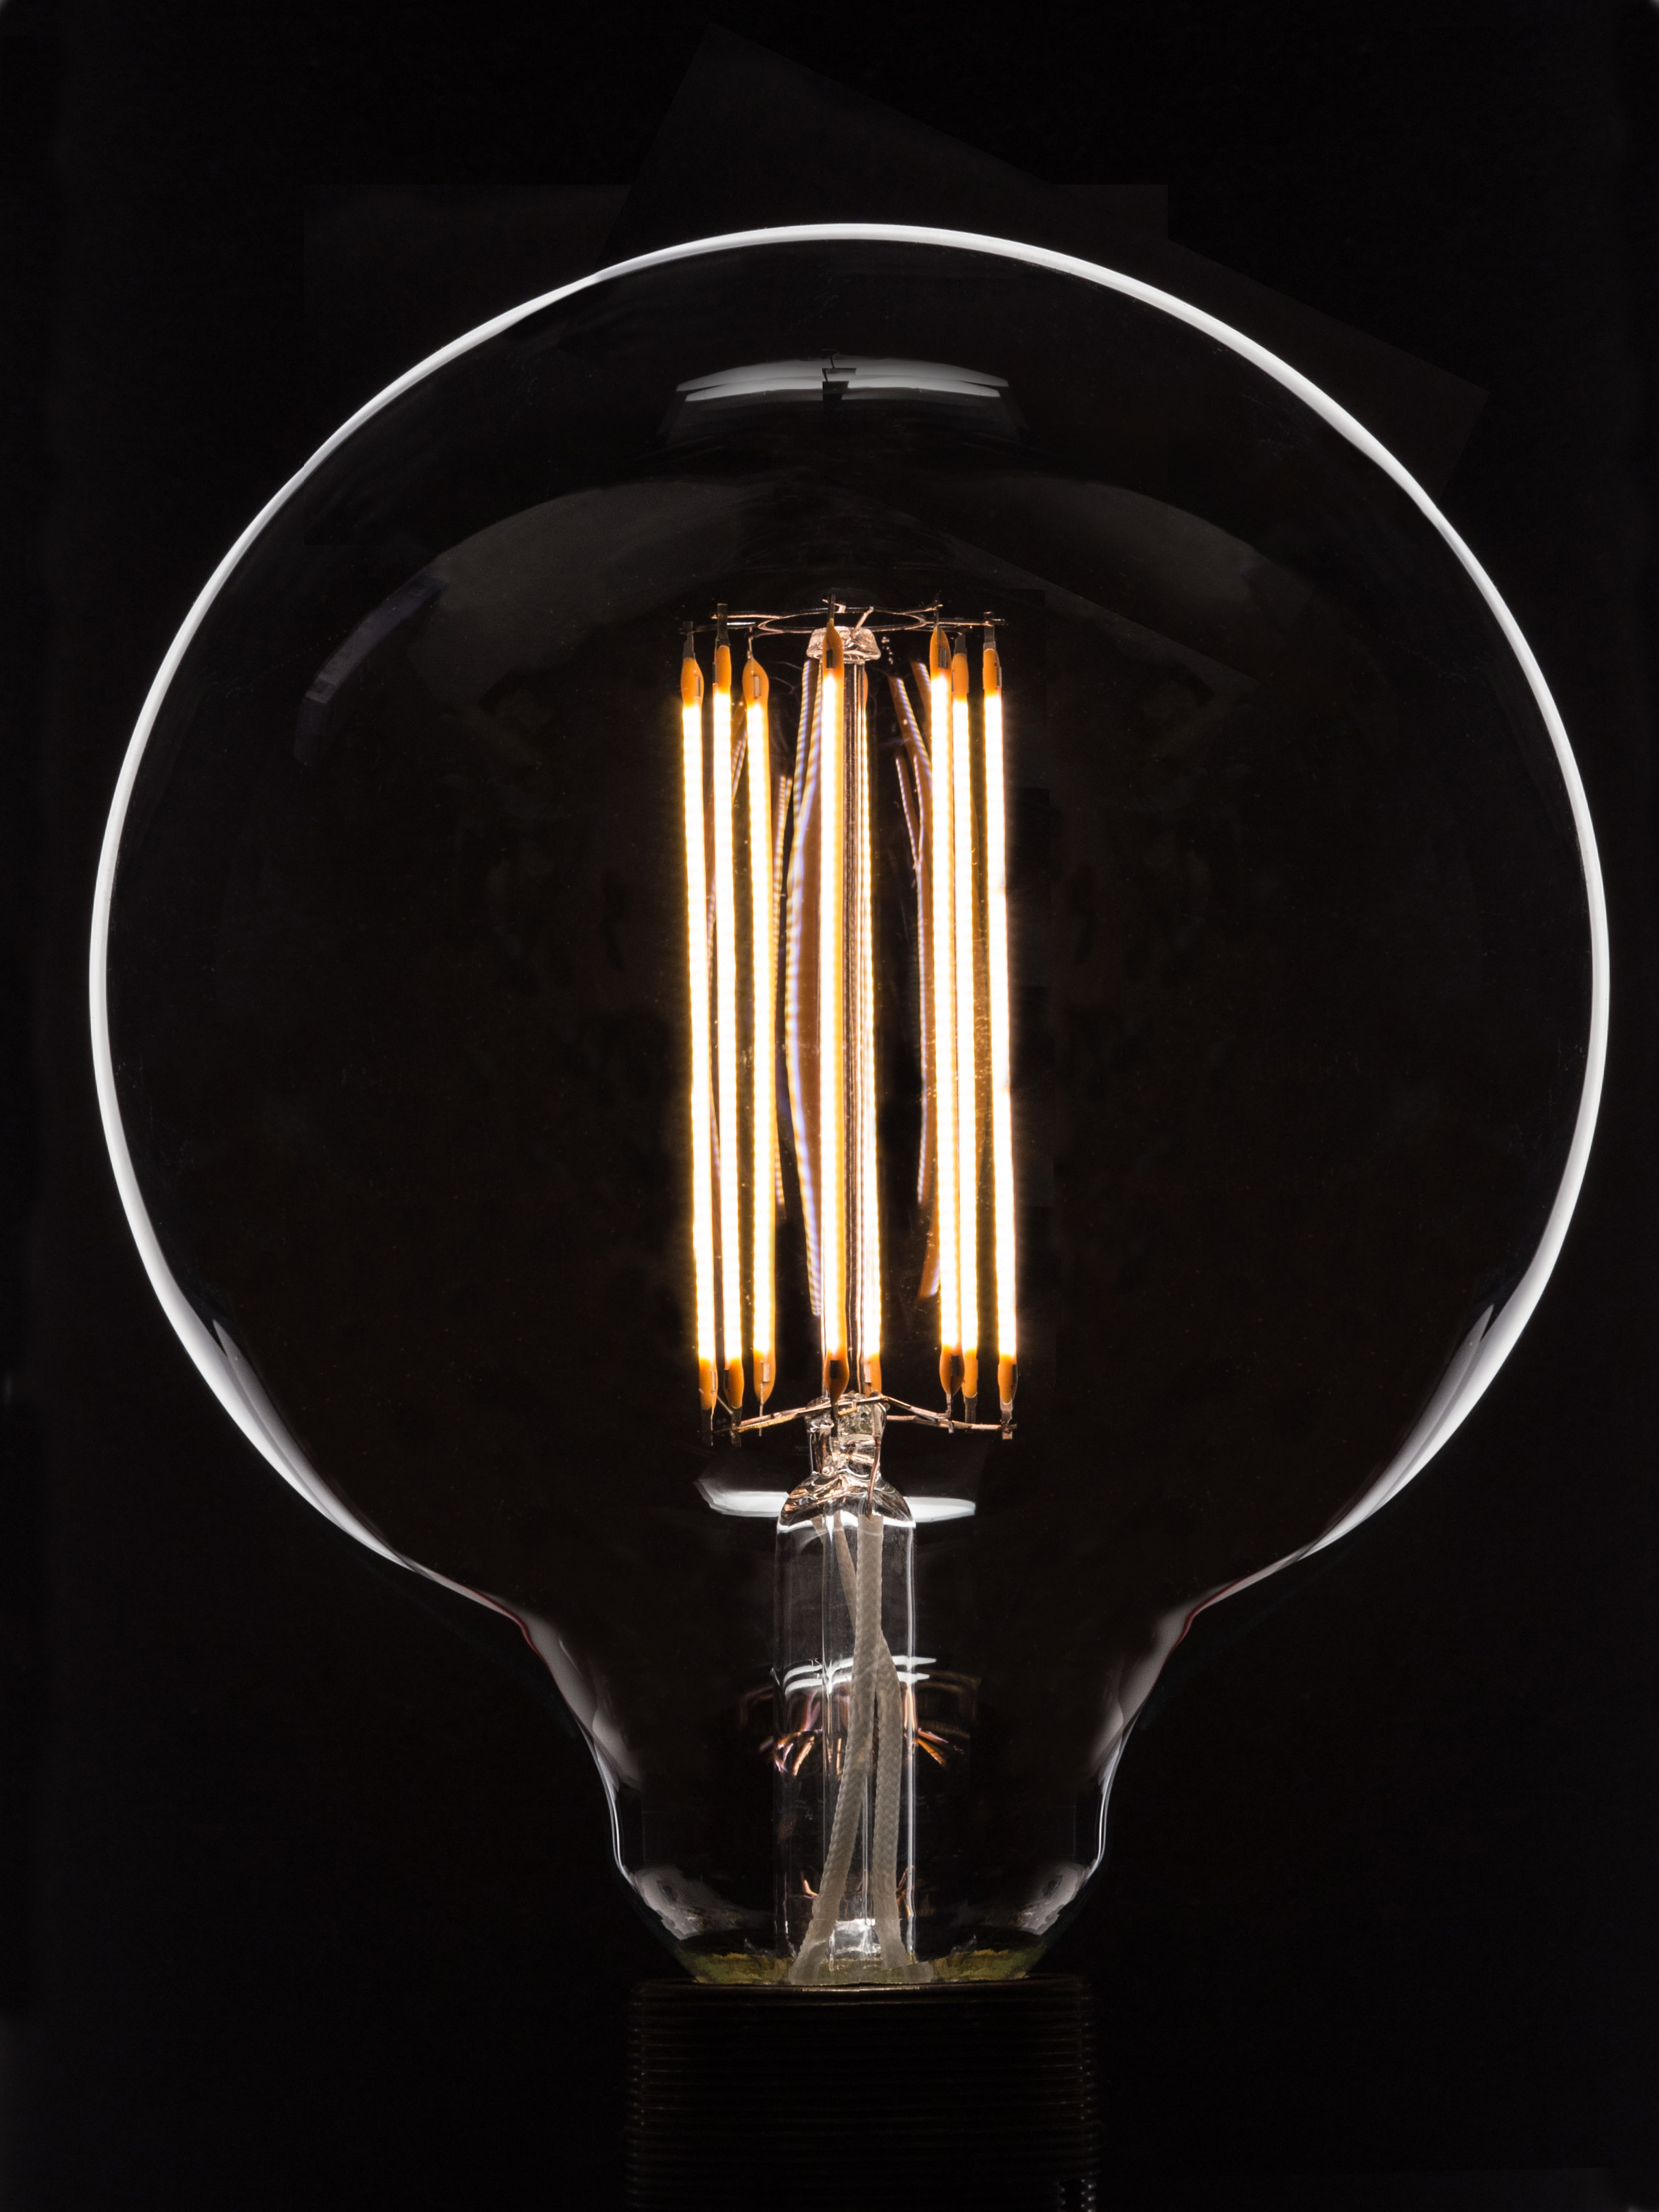 Factorylux LED-filament with a warm output, as per lighting tips number 3